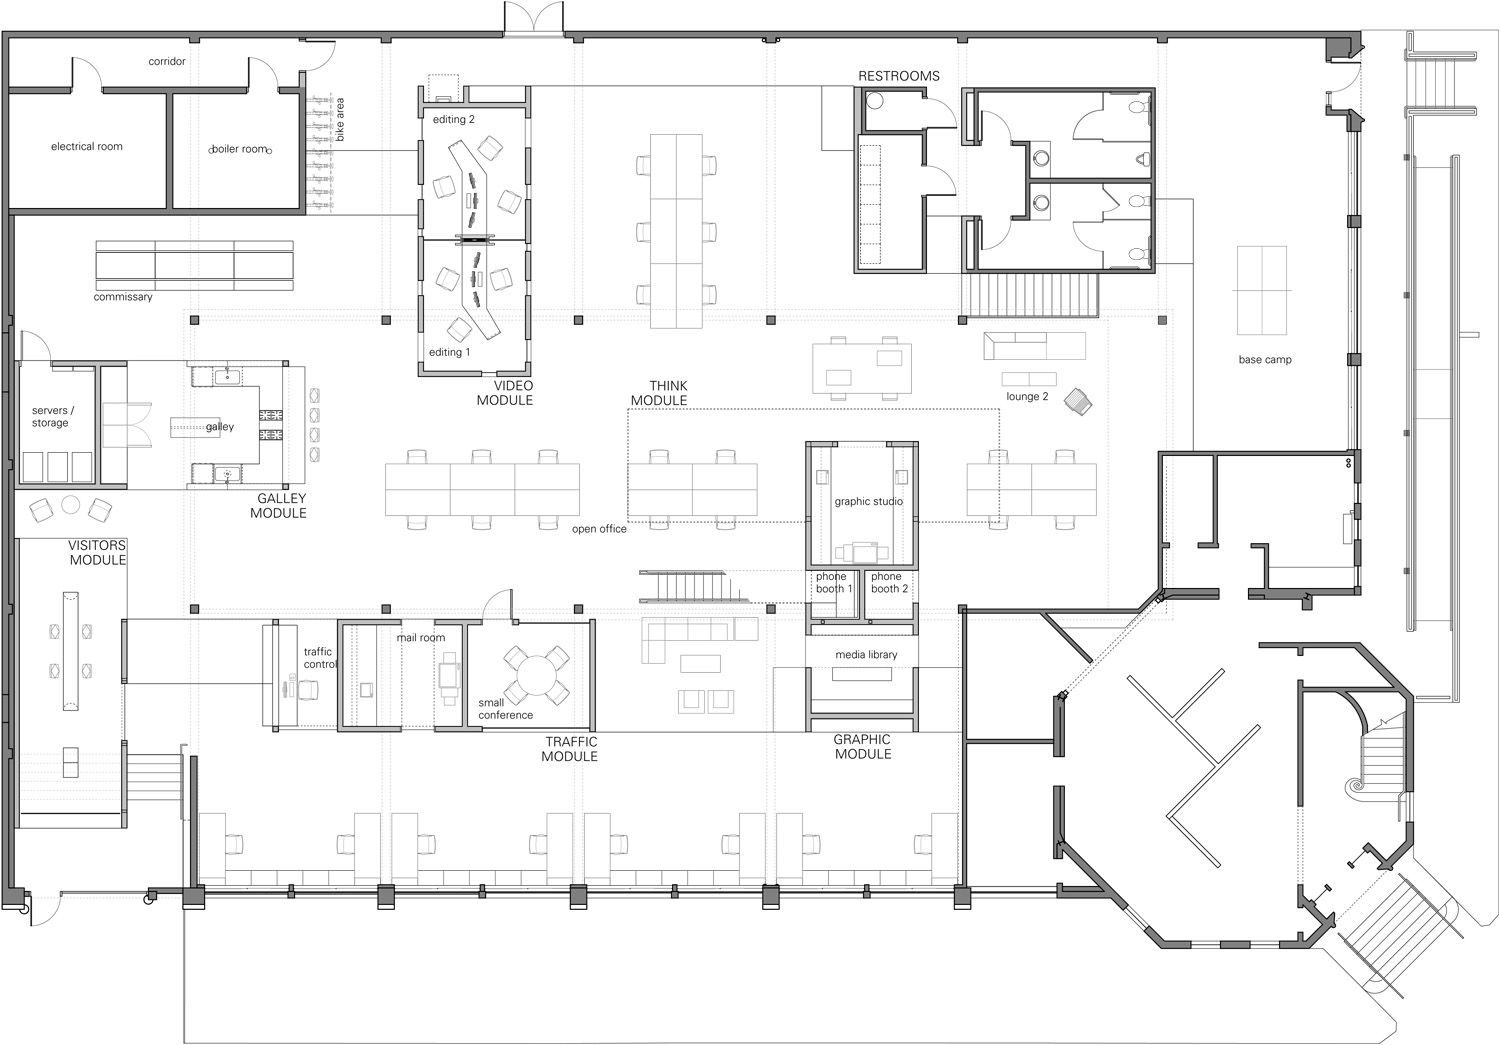 North skylab architecture office floor plan office for Architectural house plans